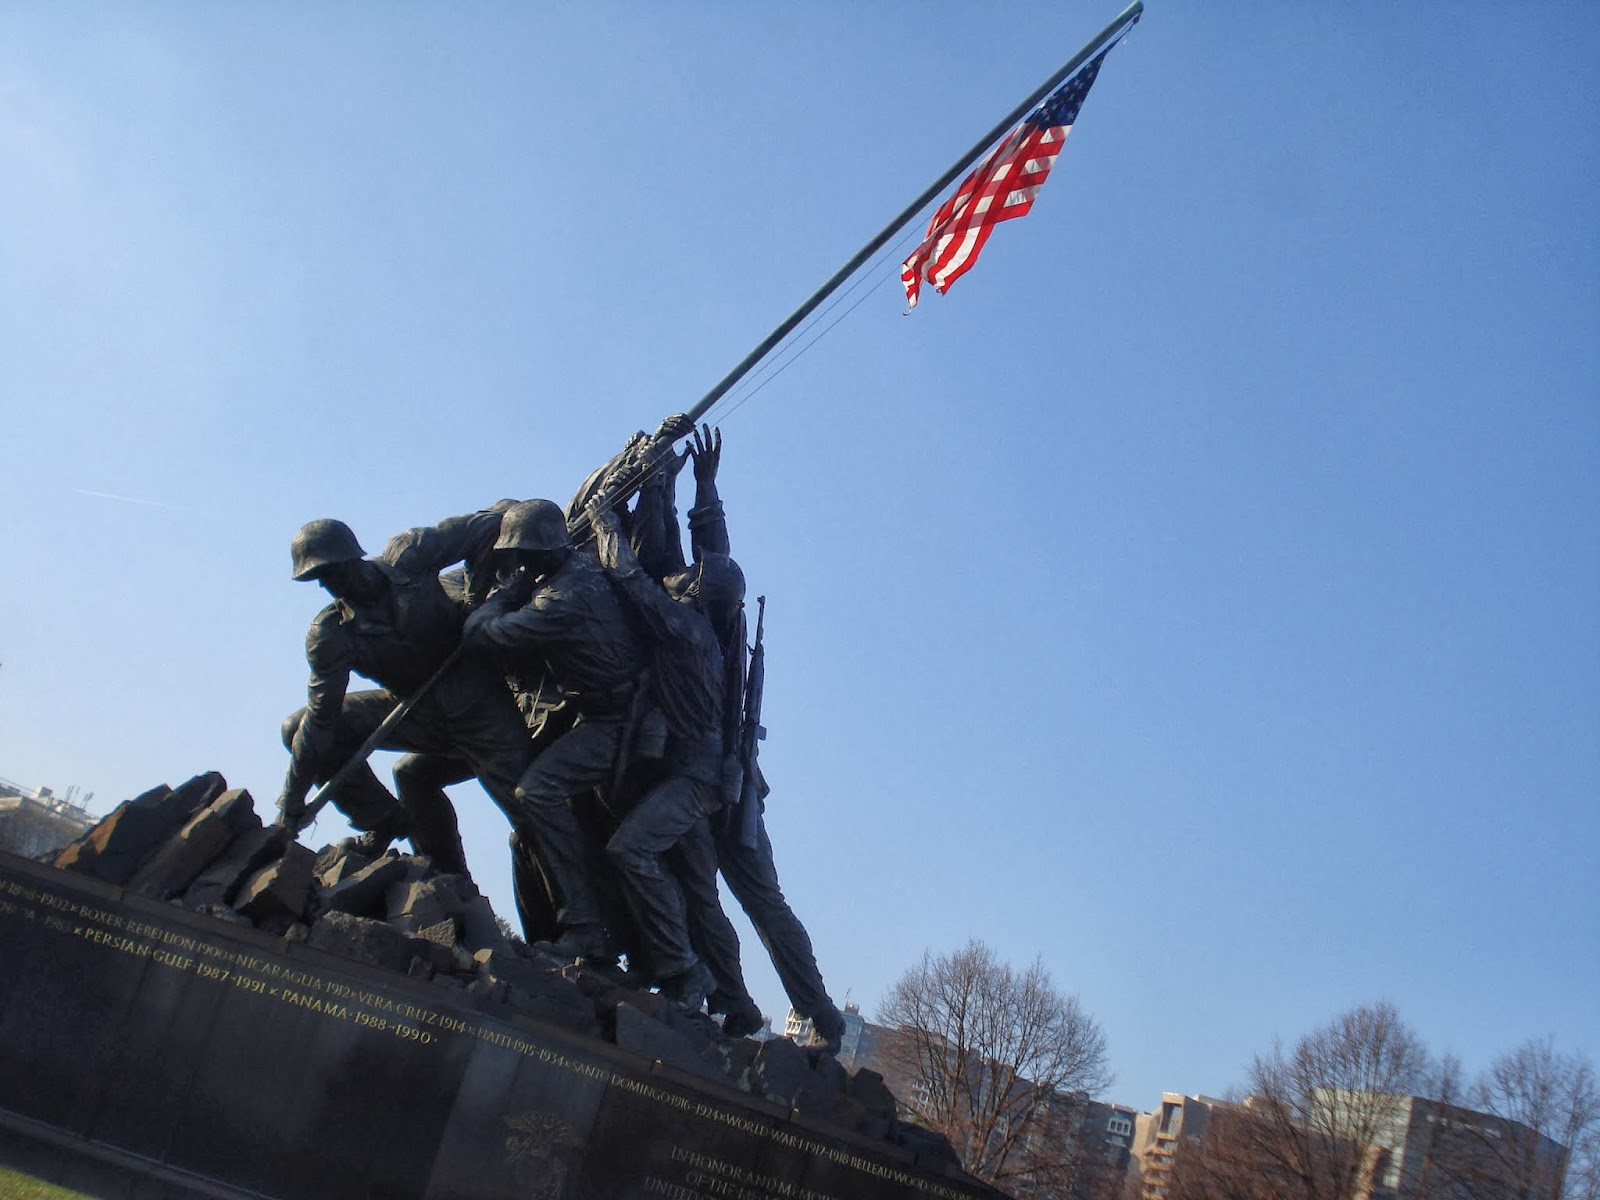 Iwo Jima Monument in Arlington, VA